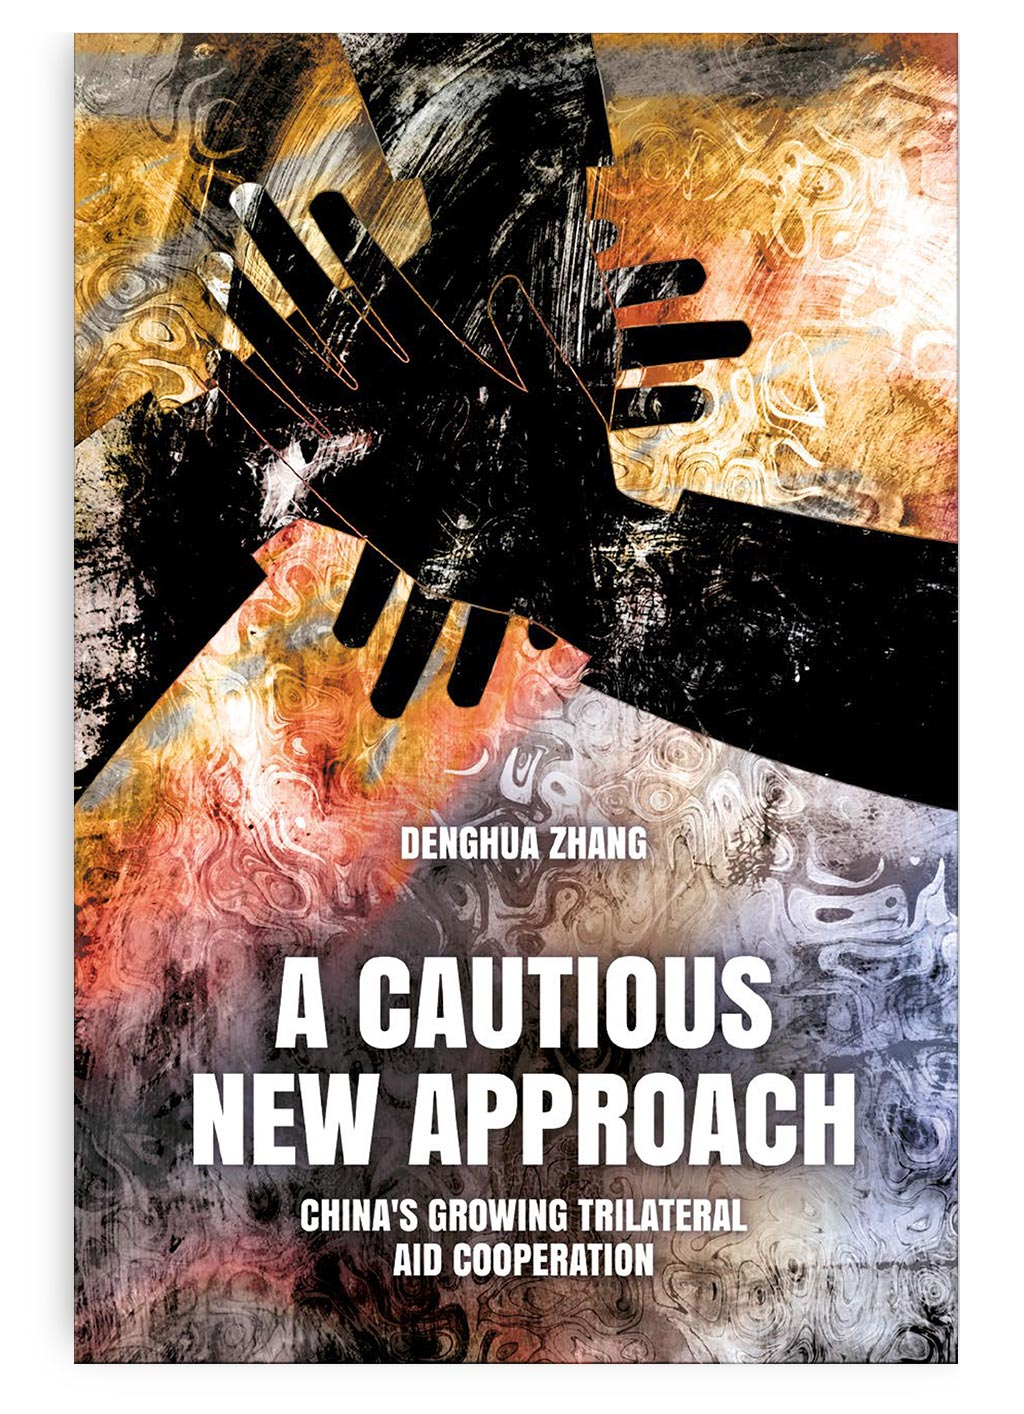 A Cautious New Approach